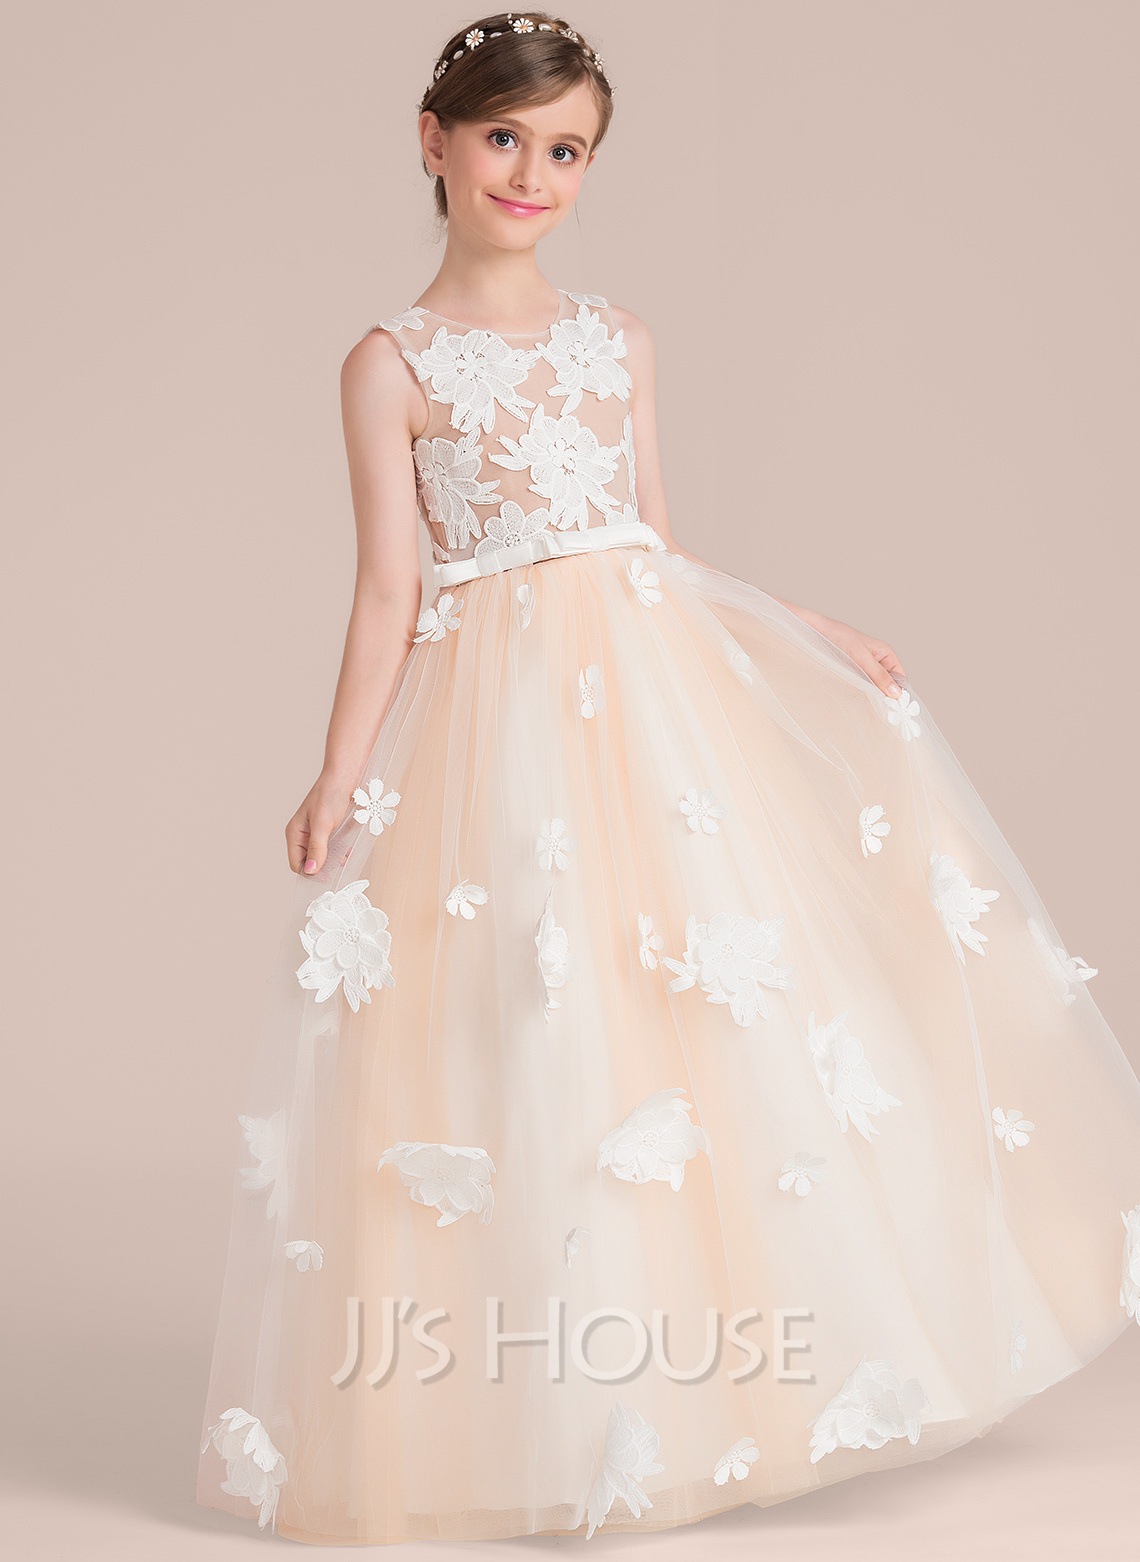 0db73d20c Ball Gown Floor-length Flower Girl Dress - Satin/Tulle/Lace Sleeveless  Scoop. Loading zoom